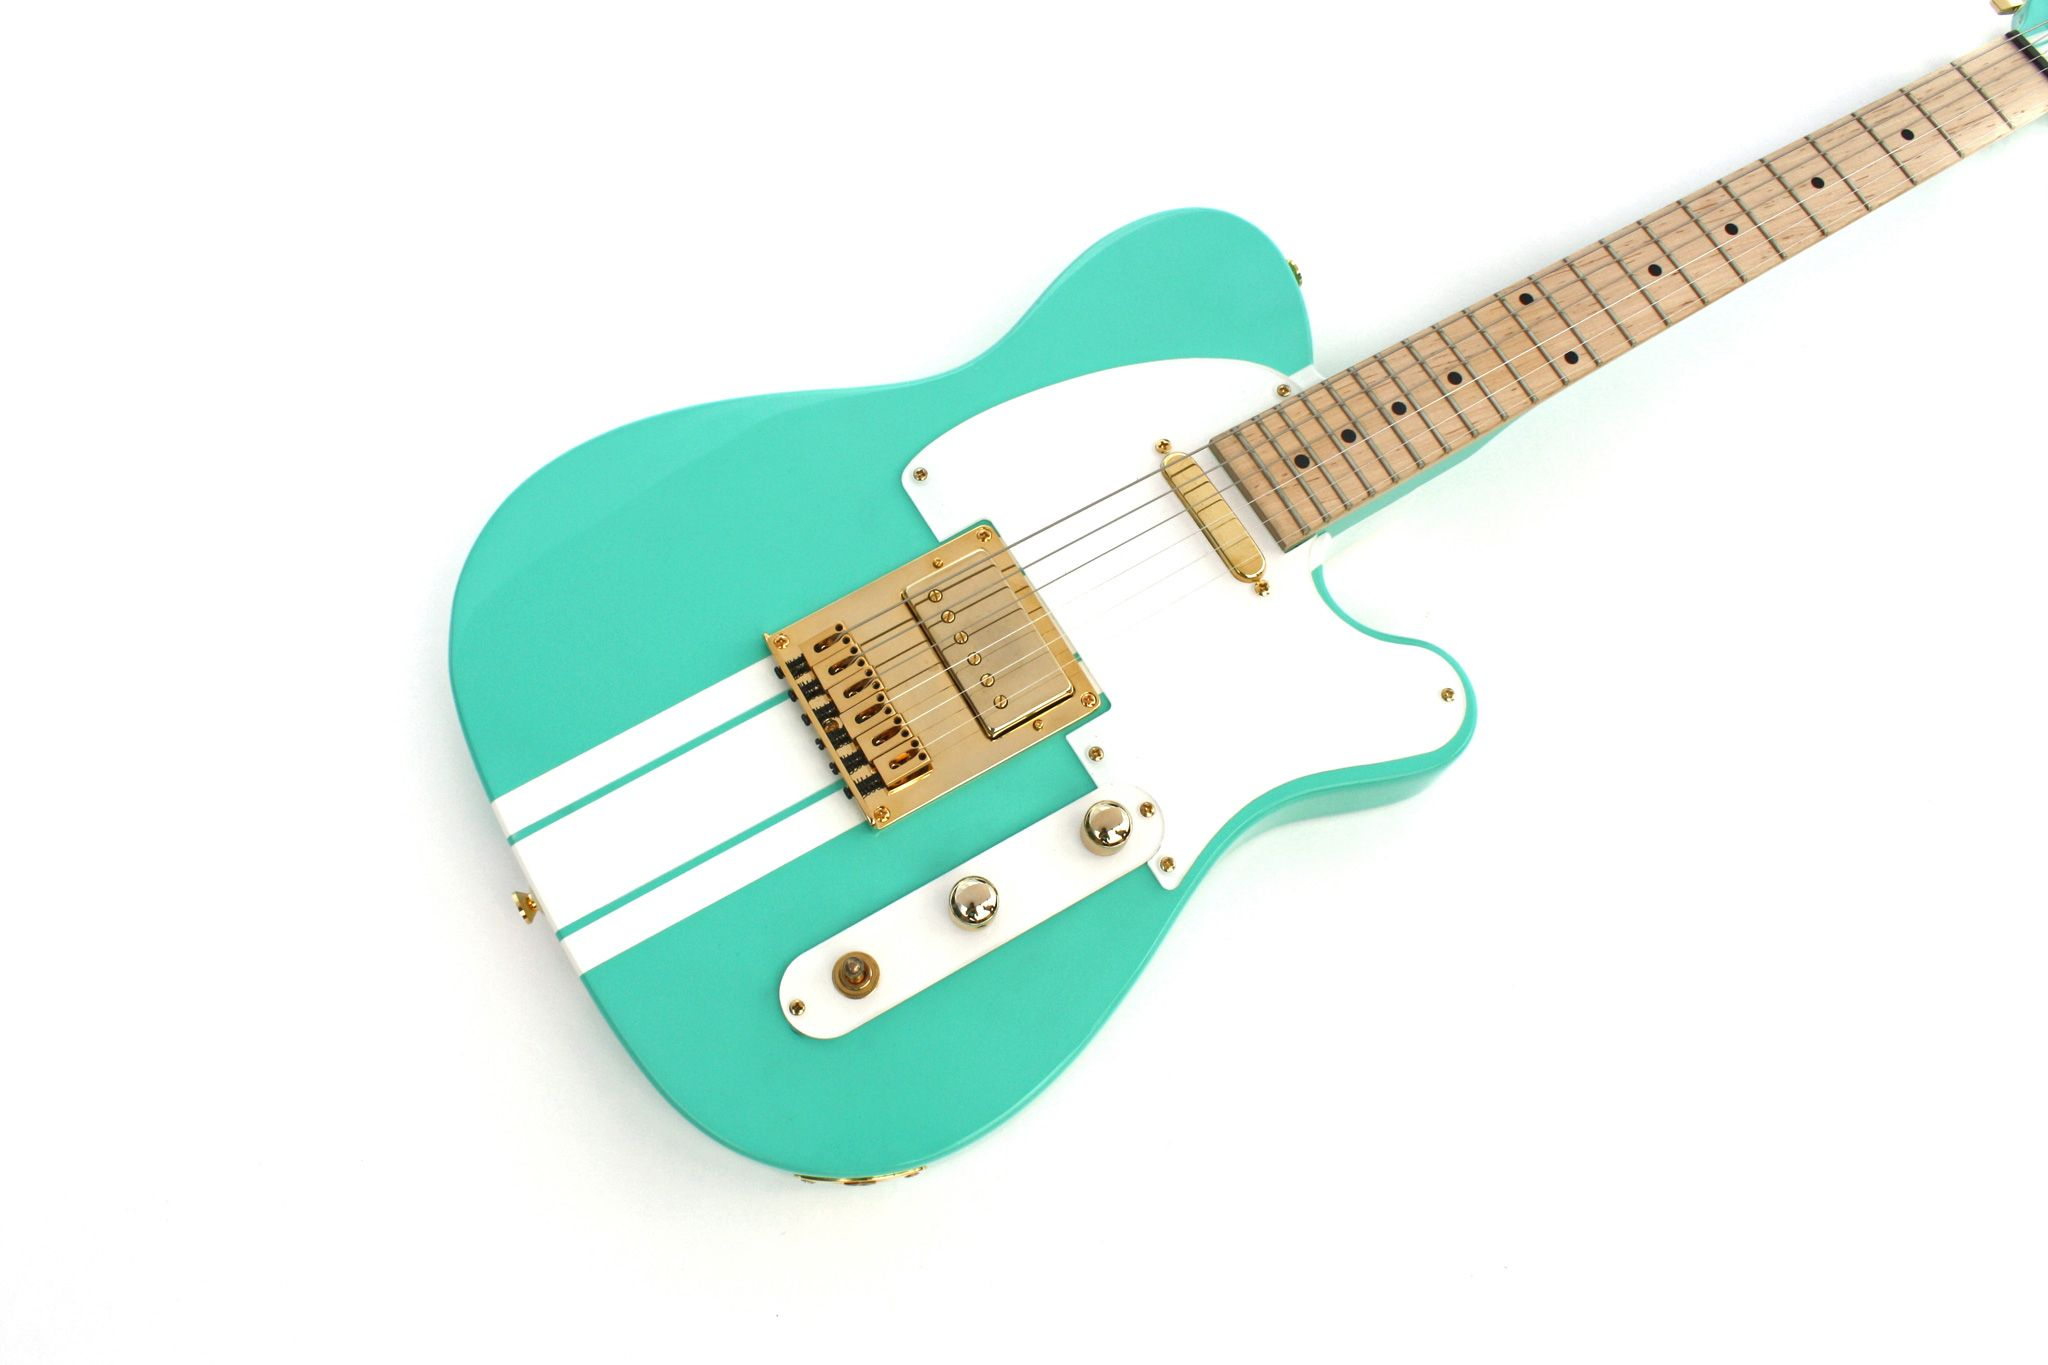 """Custom teal Dixie guitar for the band """"For the Foxes"""" crafted by Moniker Guitars. Design yours at  http://Monikerguitars.com"""